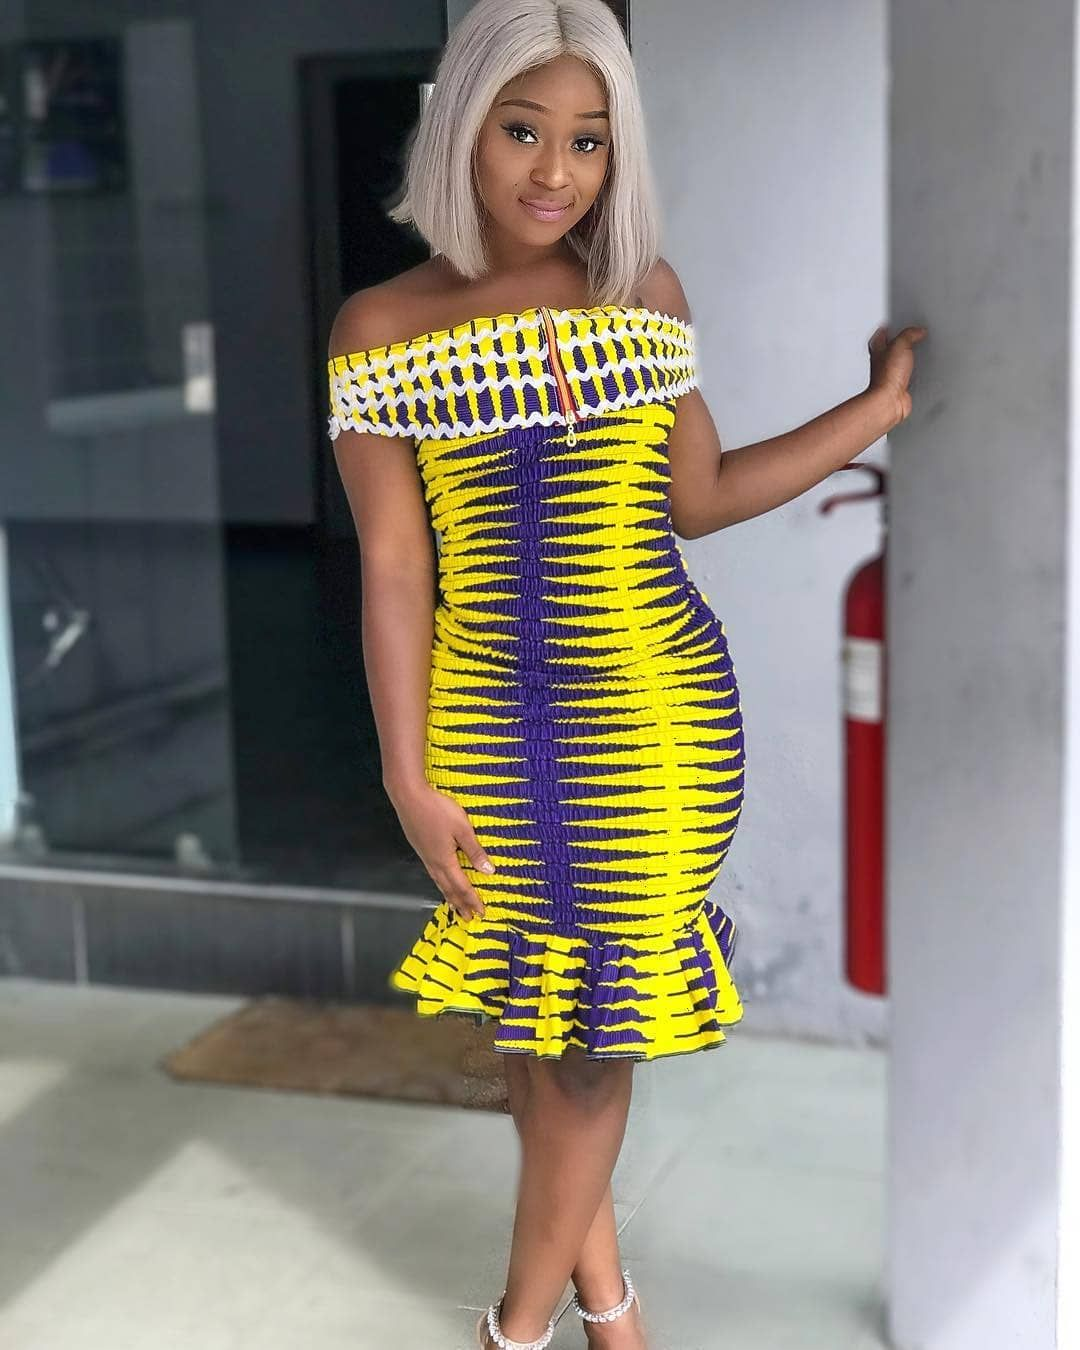 d3431b4a8b7 African Print Dresses 2018   Cute and Gorgeous Styles for Stylish ...